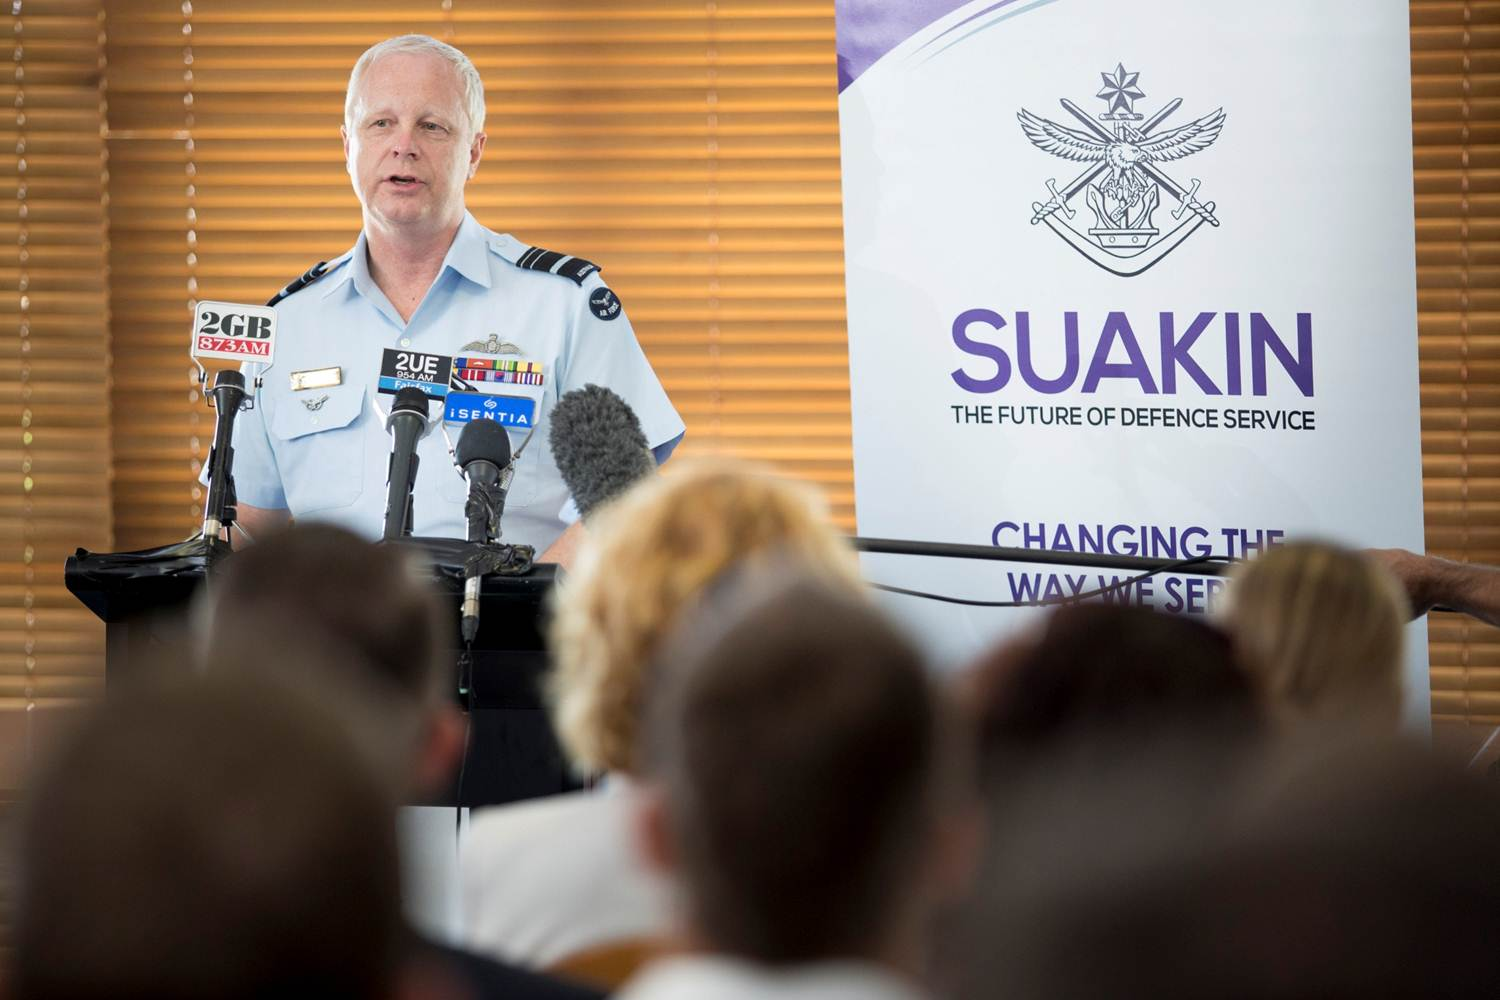 Assistant Minister for Defence, The Honourable Stuart Robert MP, joined Acting Chief of the Defence Force, Air Marshal Mark Binskin AO at HMAS Harman, Canberra to launch Project Suakin, a workforce reform that aims to further support ADF members and enhance the way they serve.   Project Suakin intends to introduce a range of full-time, part-time and casual service categories to support and retain ADF members through long-term, rewarding military careers by providing them with more options to seek as their circumstances change.